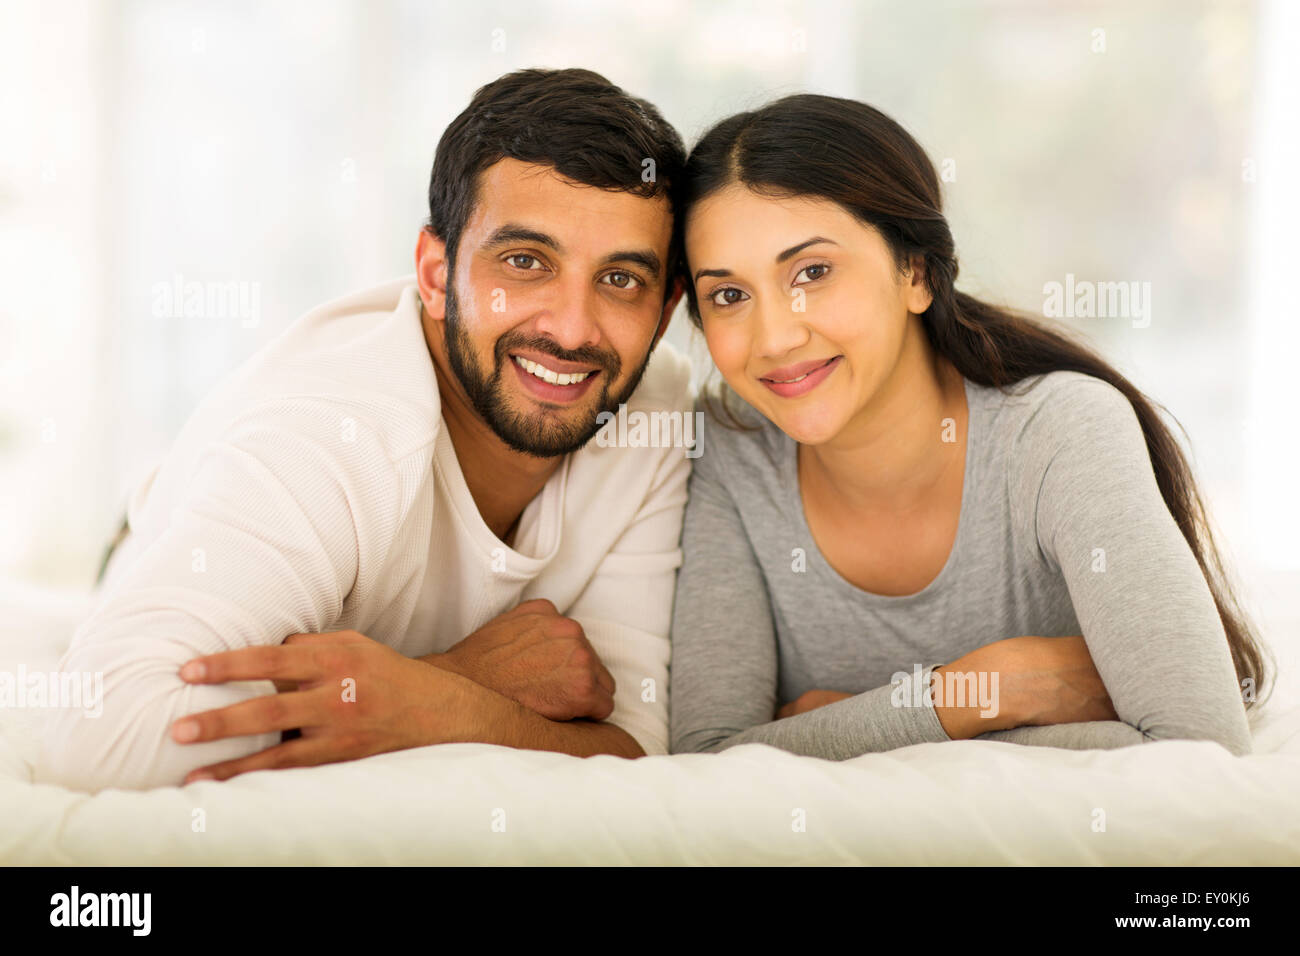 beautiful young Indian married couple lying on bed - Stock Image